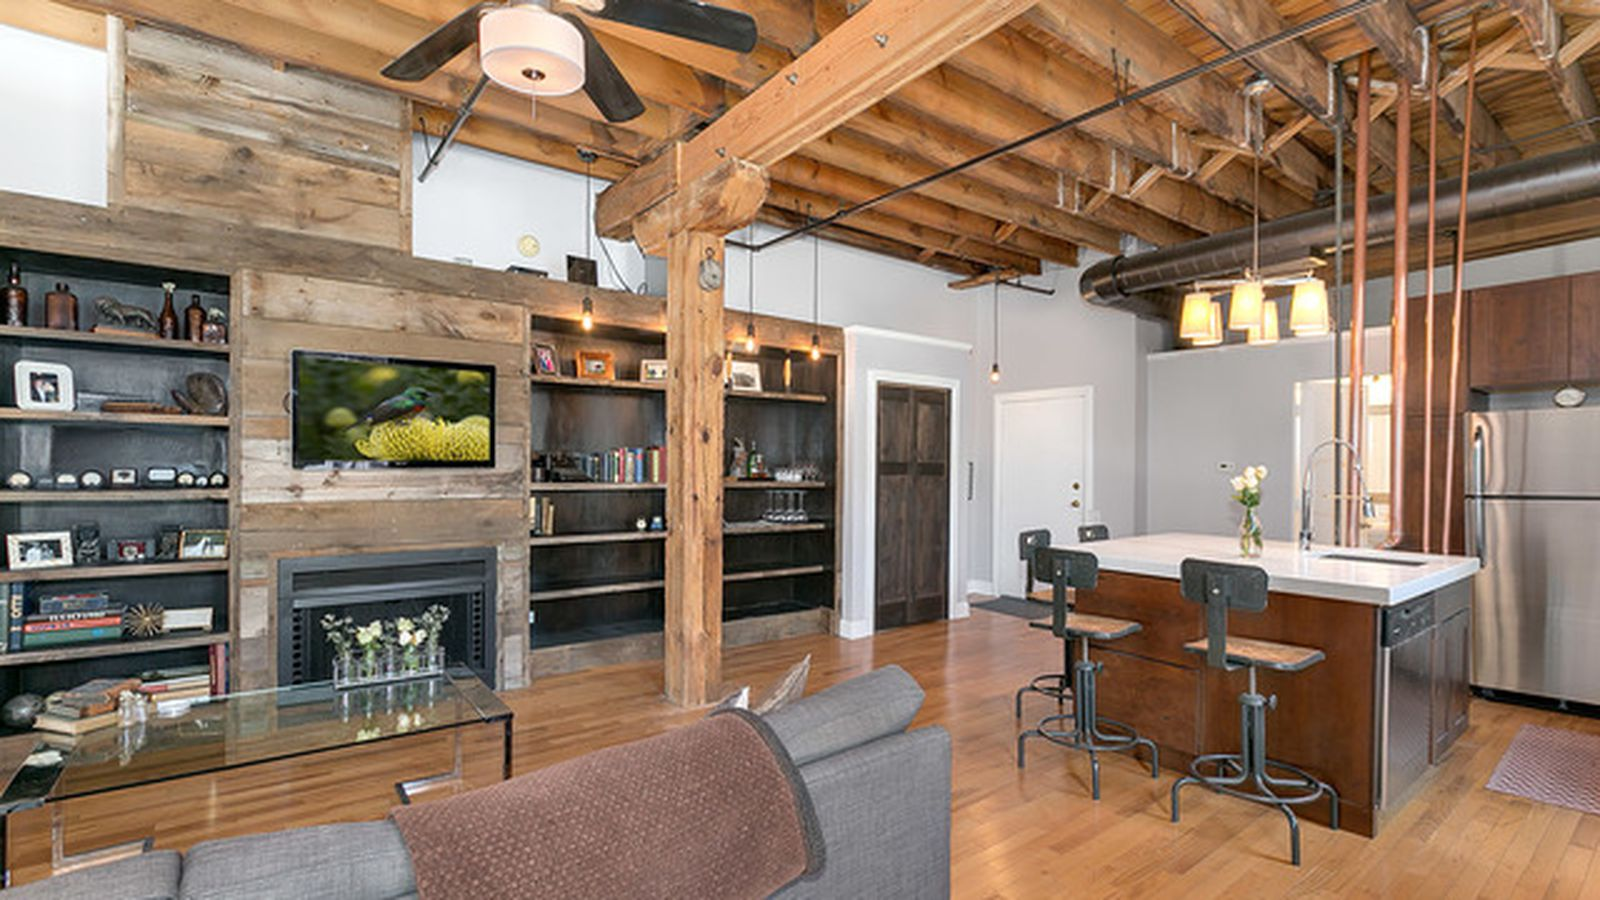 Own This Rustic One Bedroom Timber Loft In River West For